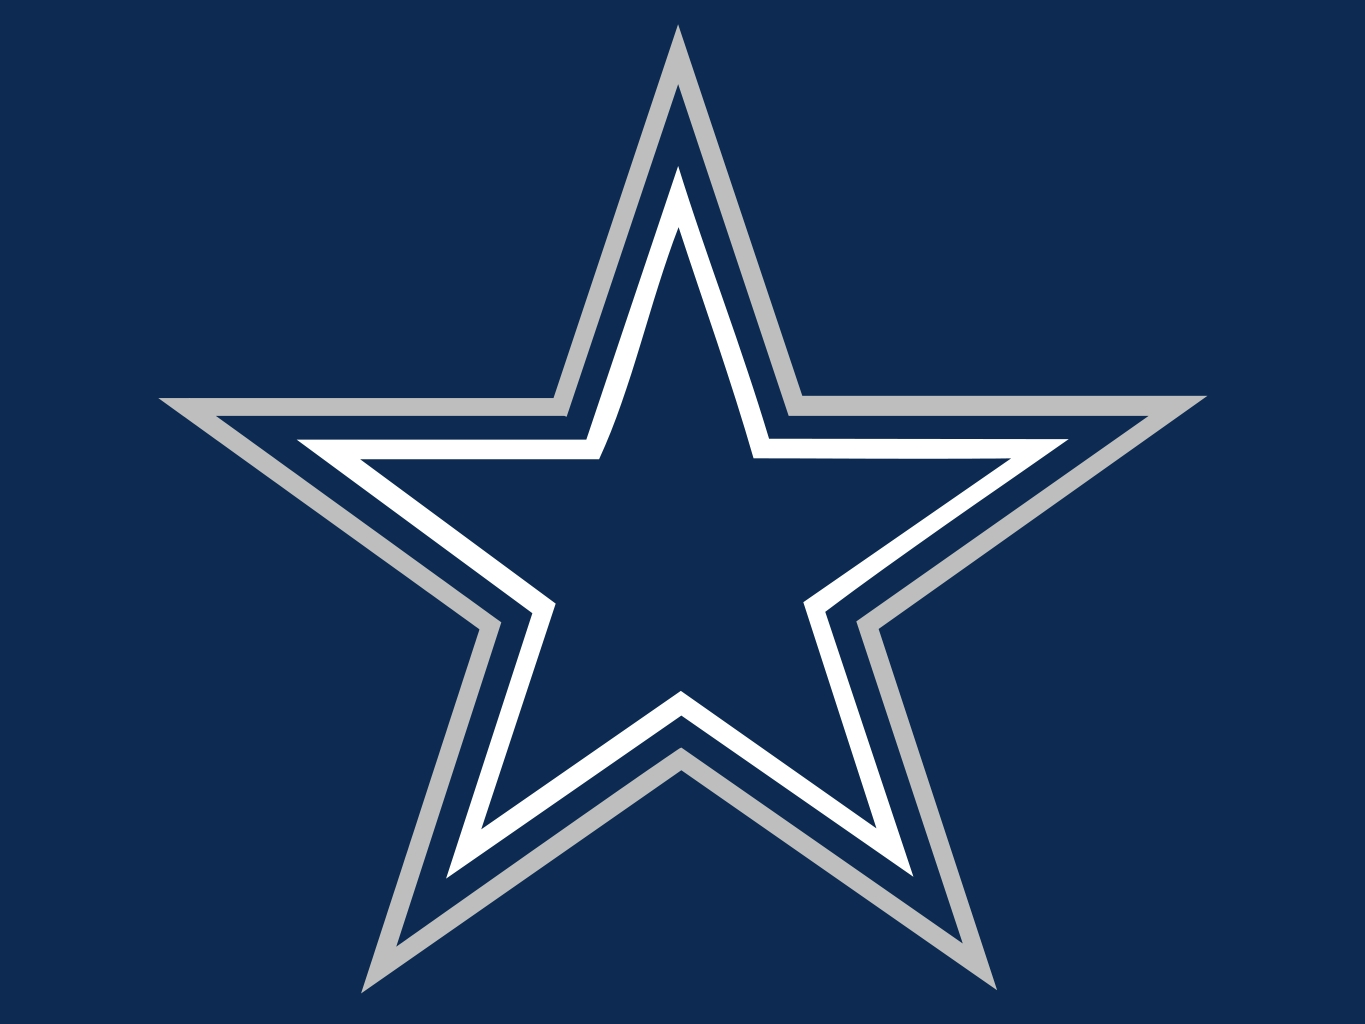 Dallas Cowboys Logo - The All Out Sports Network